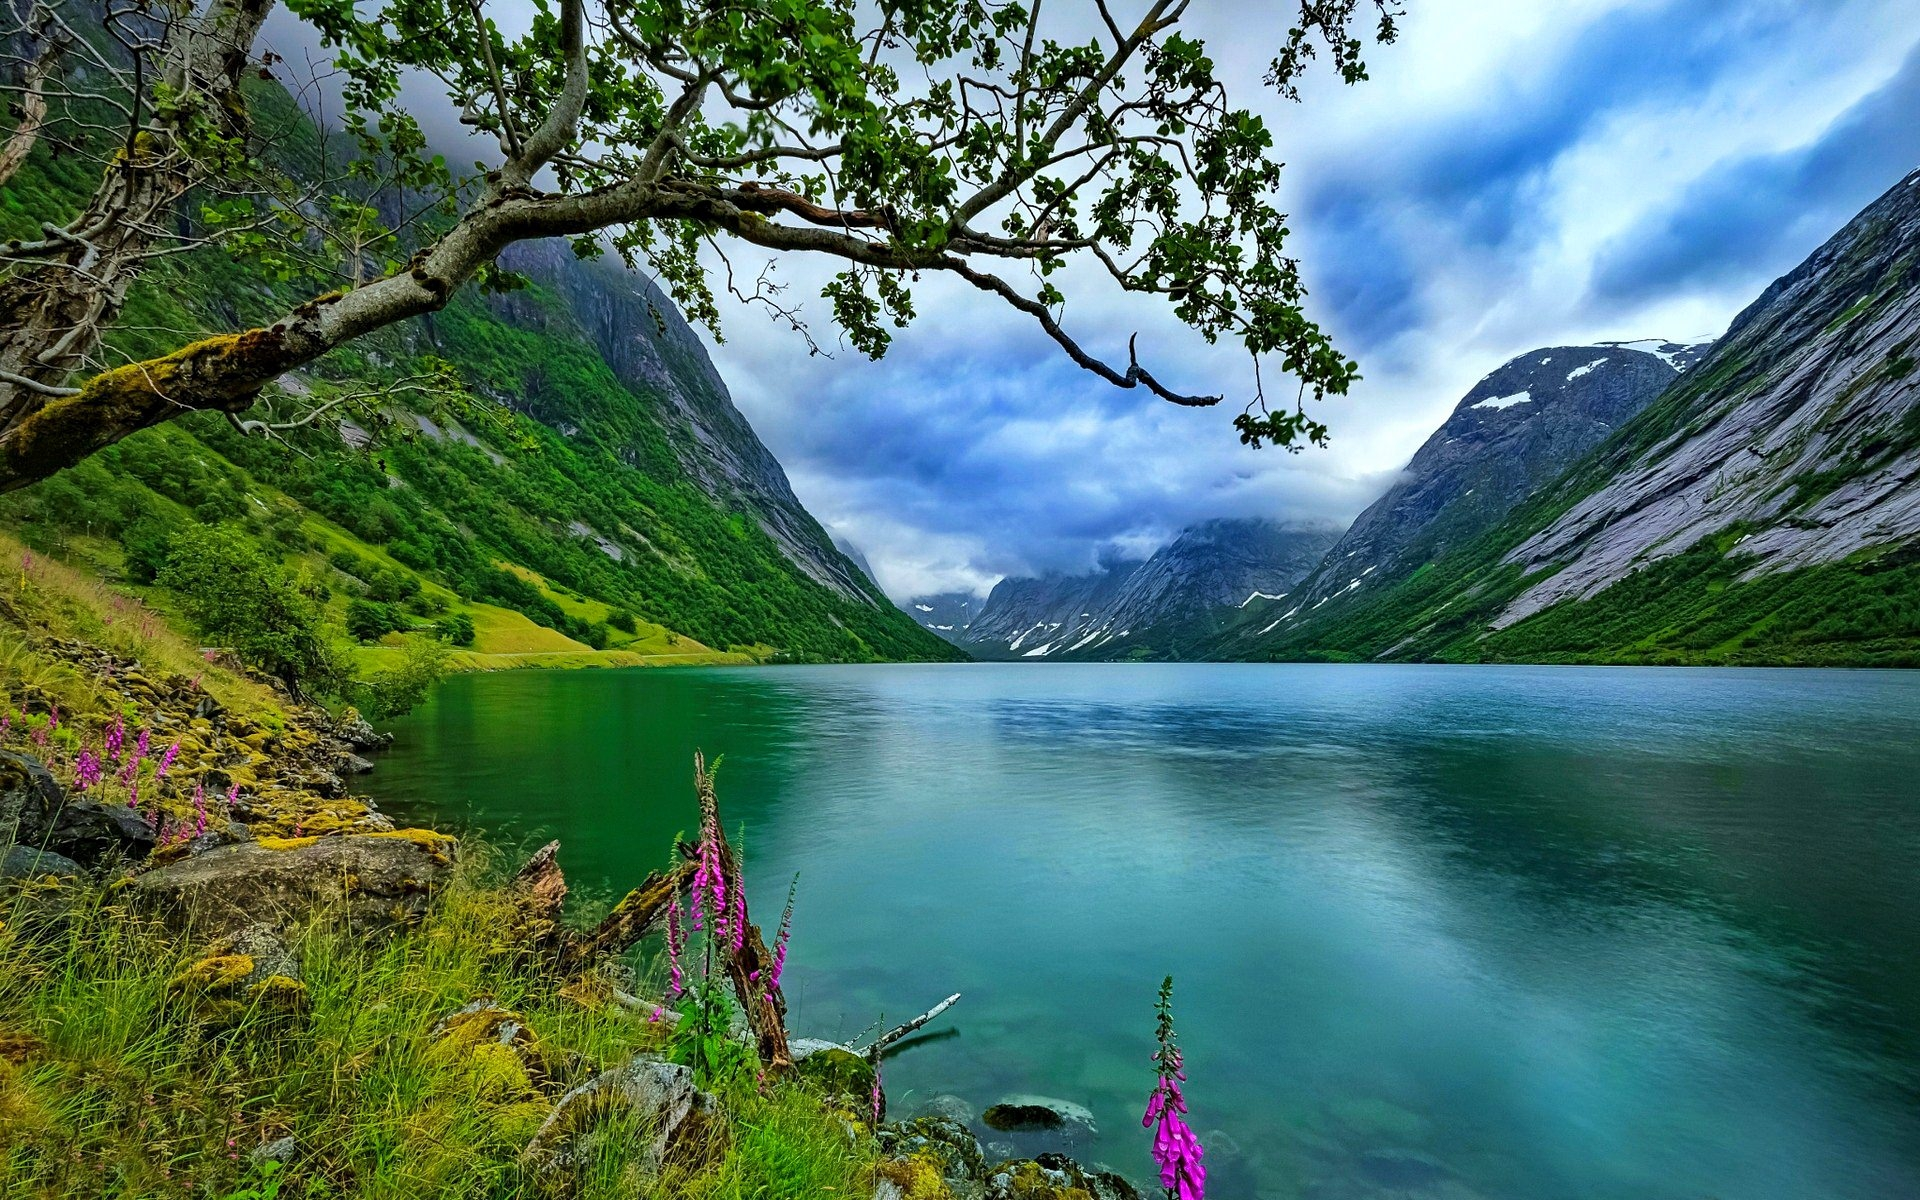 Calm Mountain Lake Landscape Wallpaper